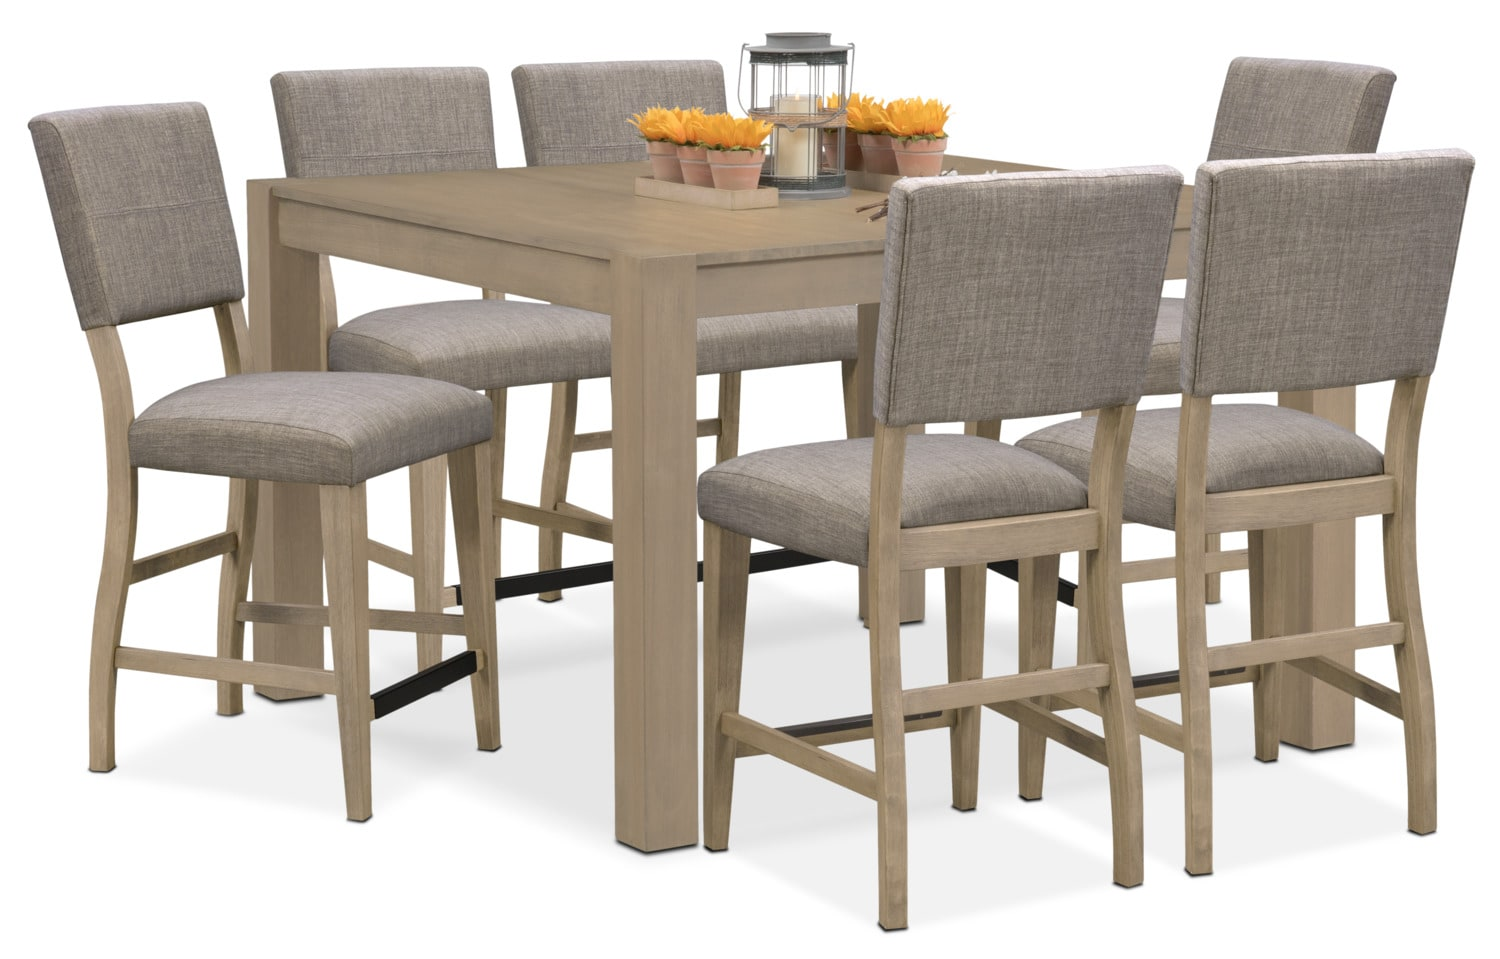 Dining Room Furniture - Tribeca Counter-Height Dining Table and 6 Upholstered Dining Chairs